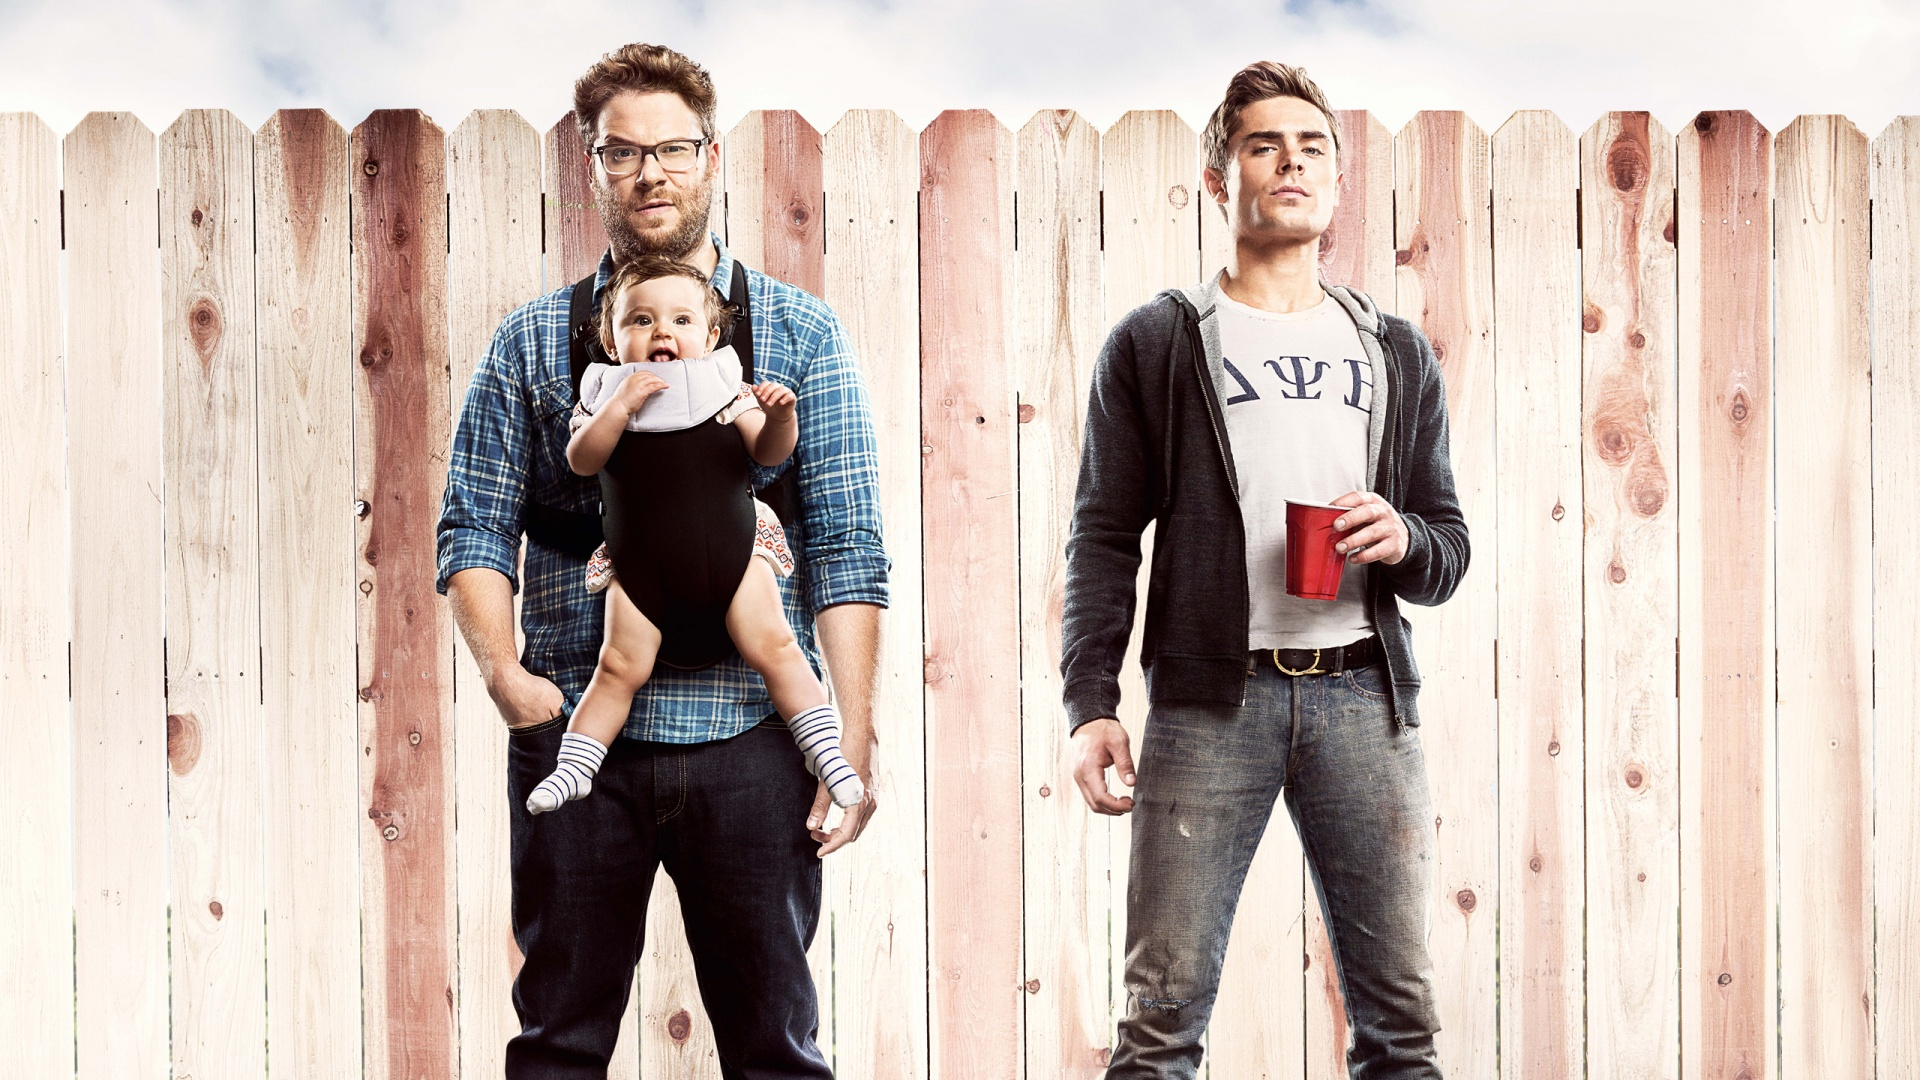 Neighbors Wallpaper